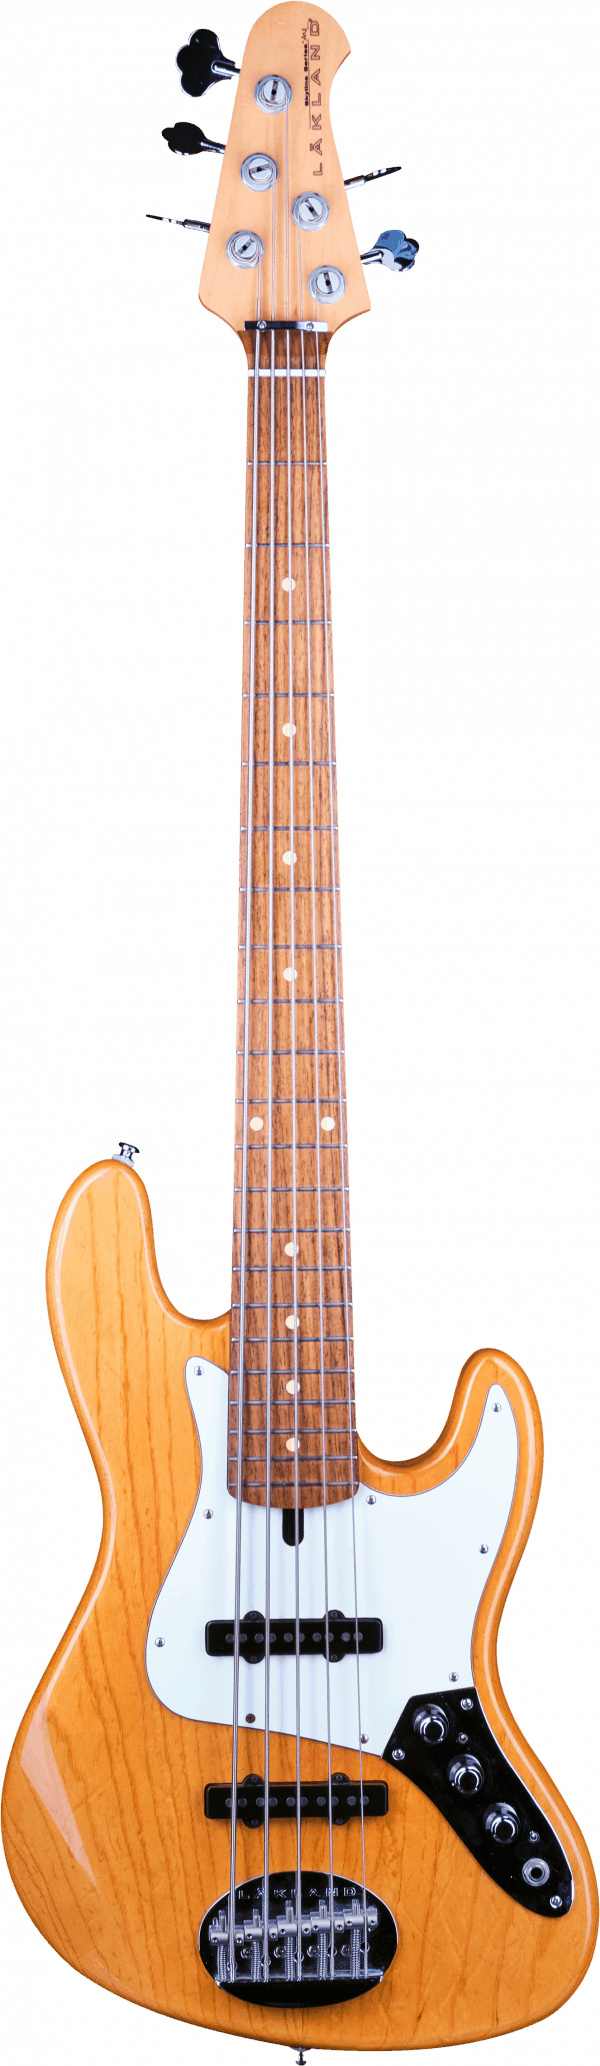 Lakland Skyline Joe Osborne W/ John East Preamp